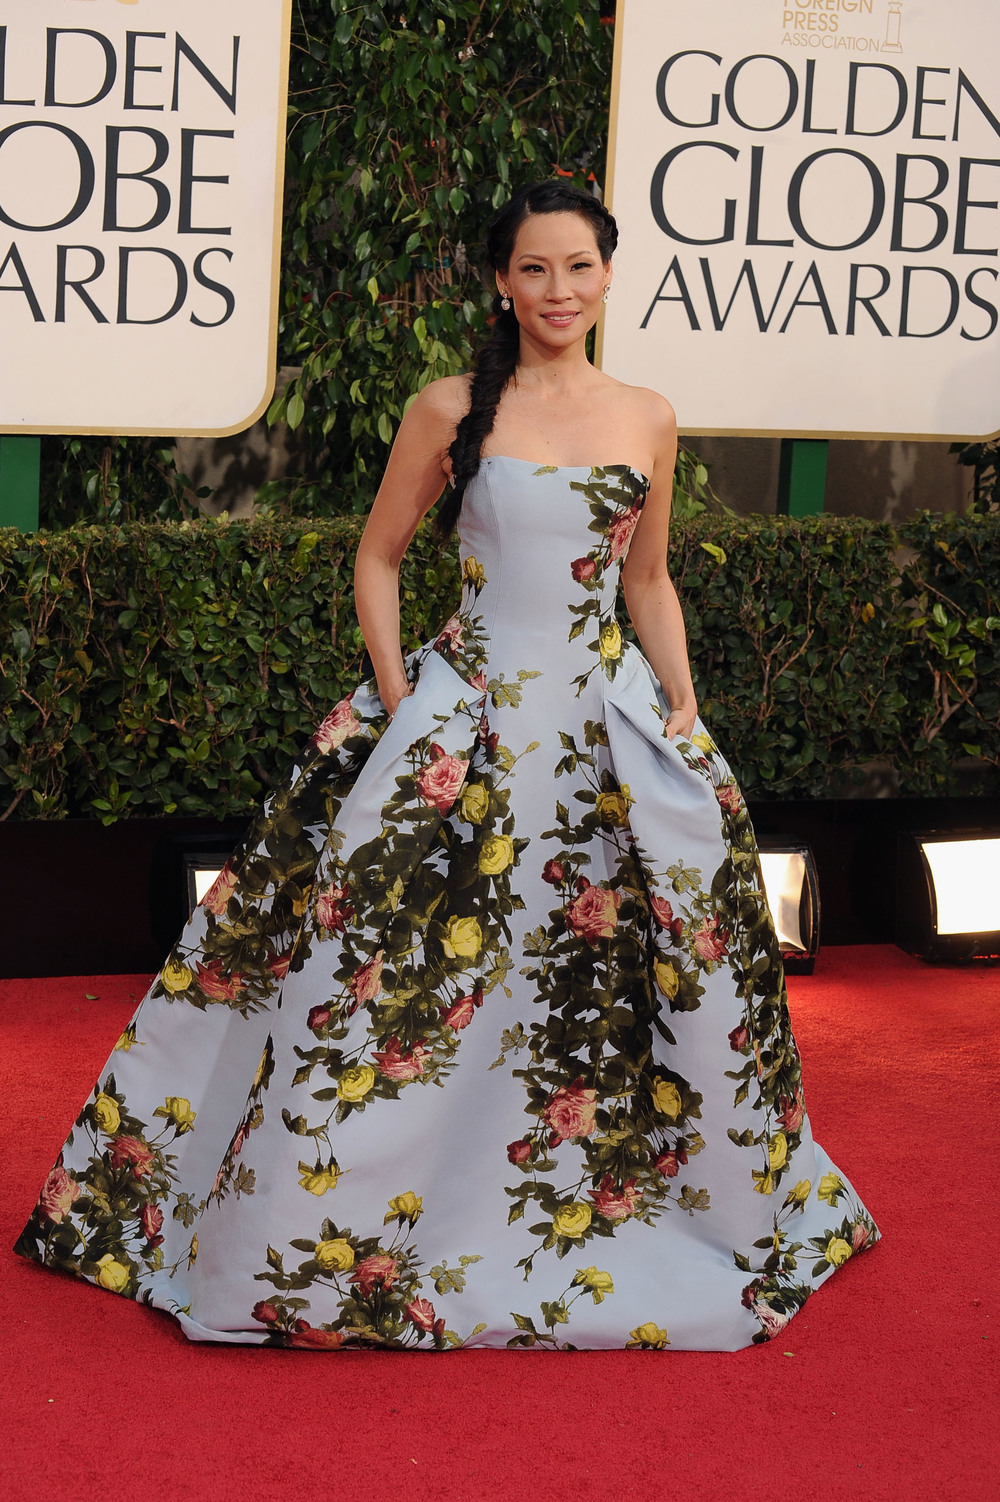 Lucy Liu at the 2013 Golden Globe Awards Red Carpet